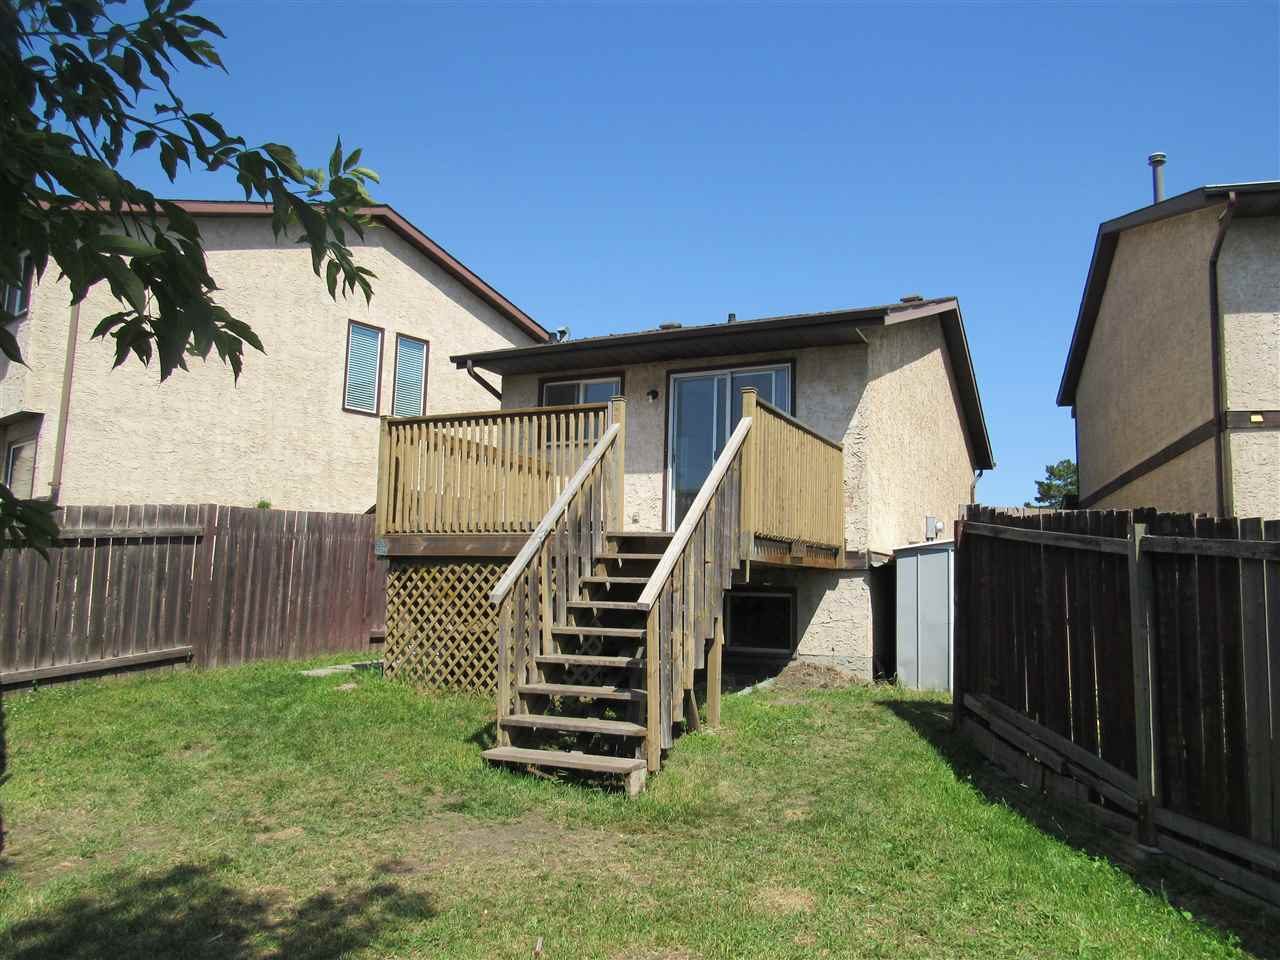 Photo 24: 3658 43A Avenue in Edmonton: Zone 29 House for sale : MLS(r) # E4072229